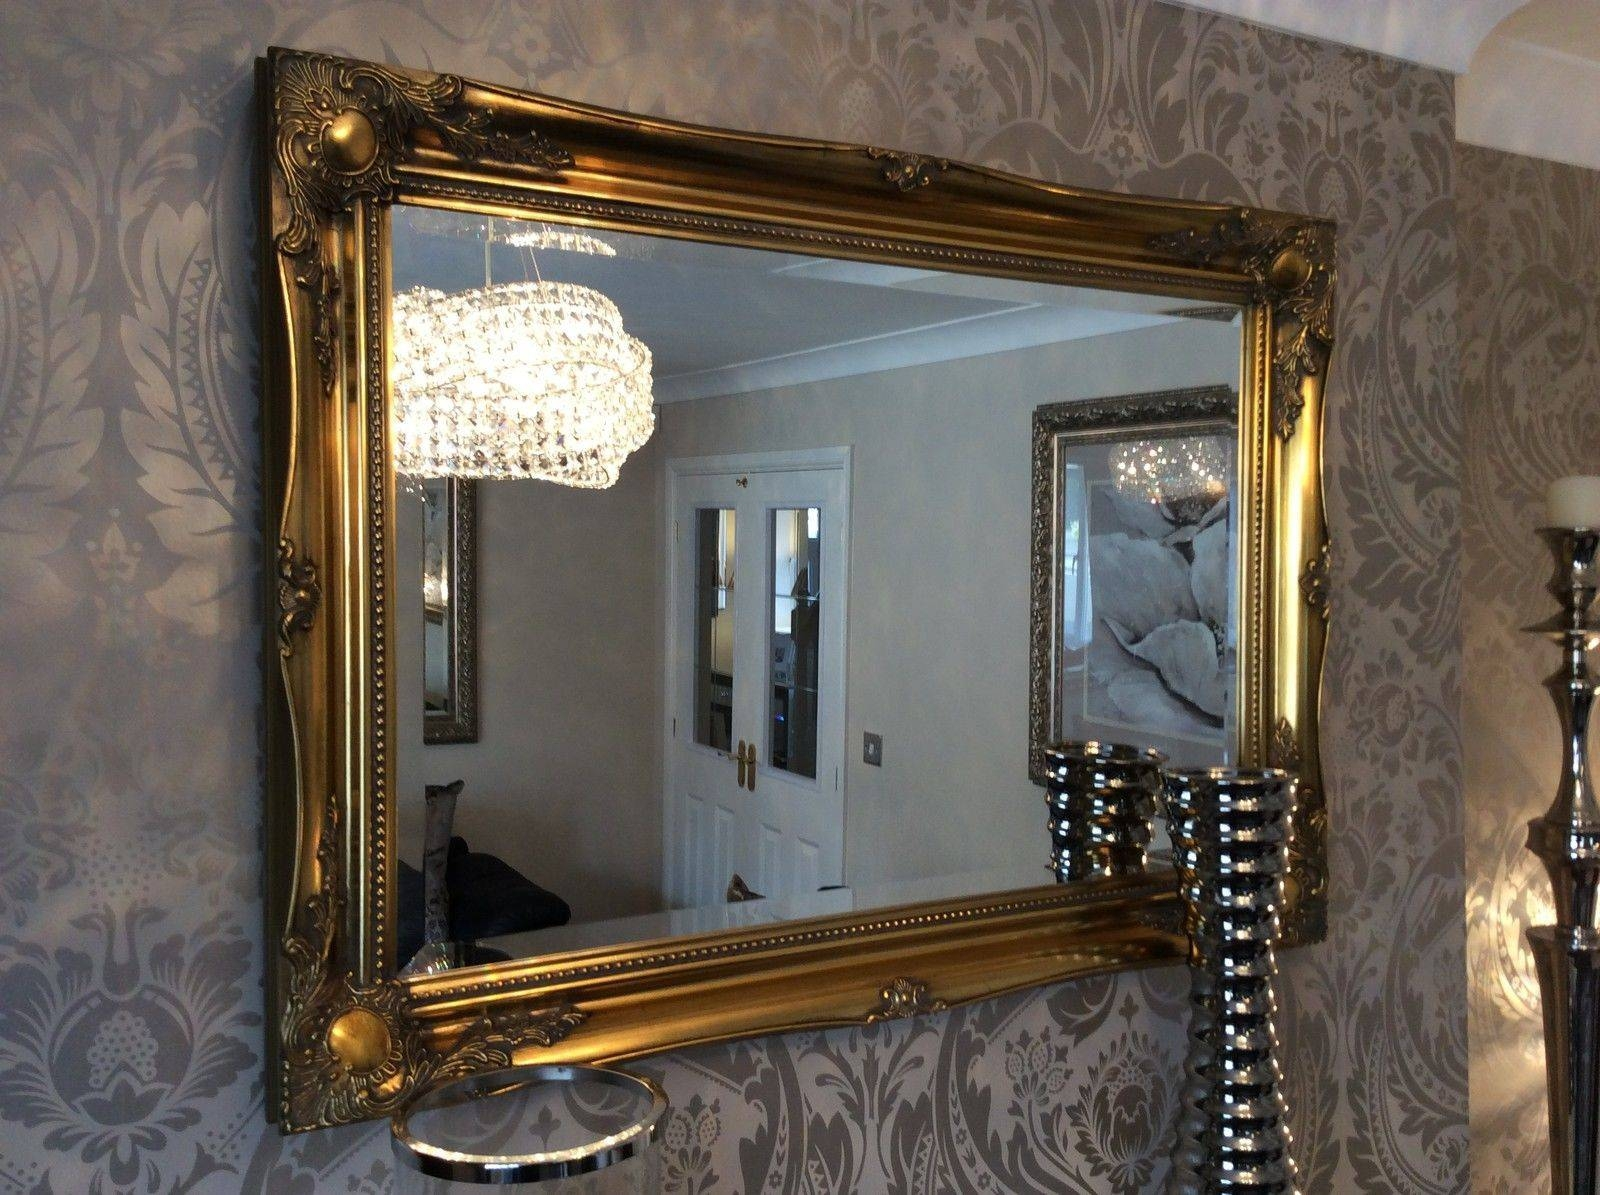 Large Antique Gold Shabby Chic Ornate Decorative Over Mantle Gilt Regarding Gold Shabby Chic Mirrors (View 5 of 15)